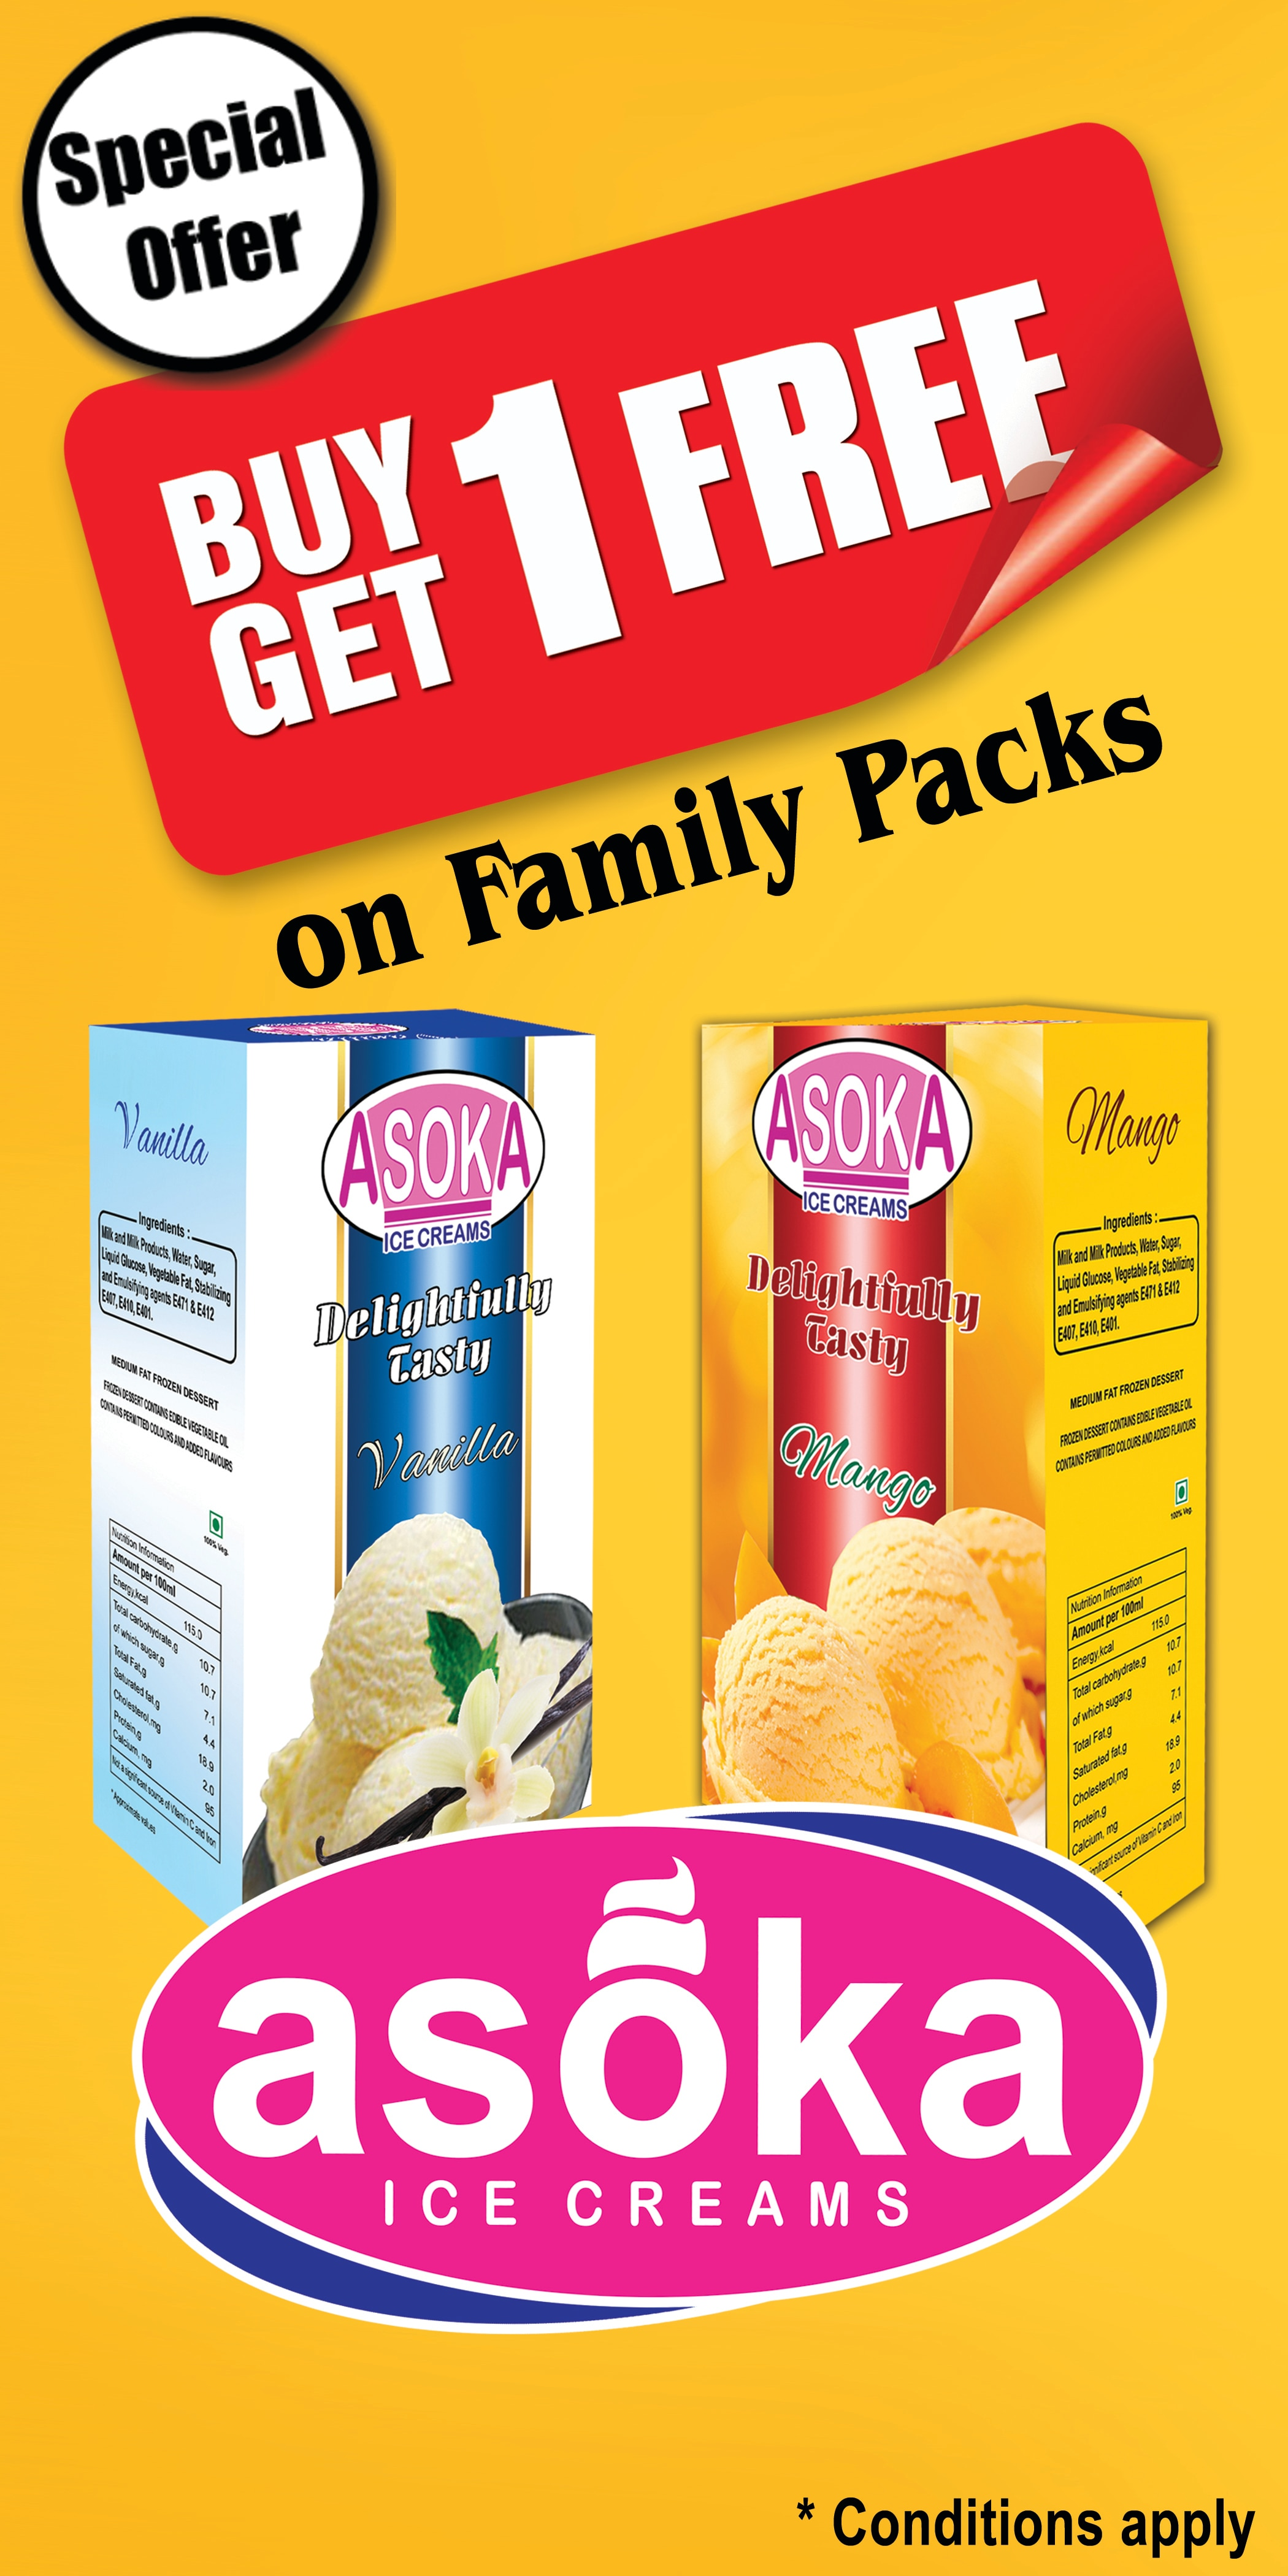 we have what you are waiting for this summer.yes.buy 1 get 1 free offer on family packs.enjoy our range of flavours from natural fruits and nuts.